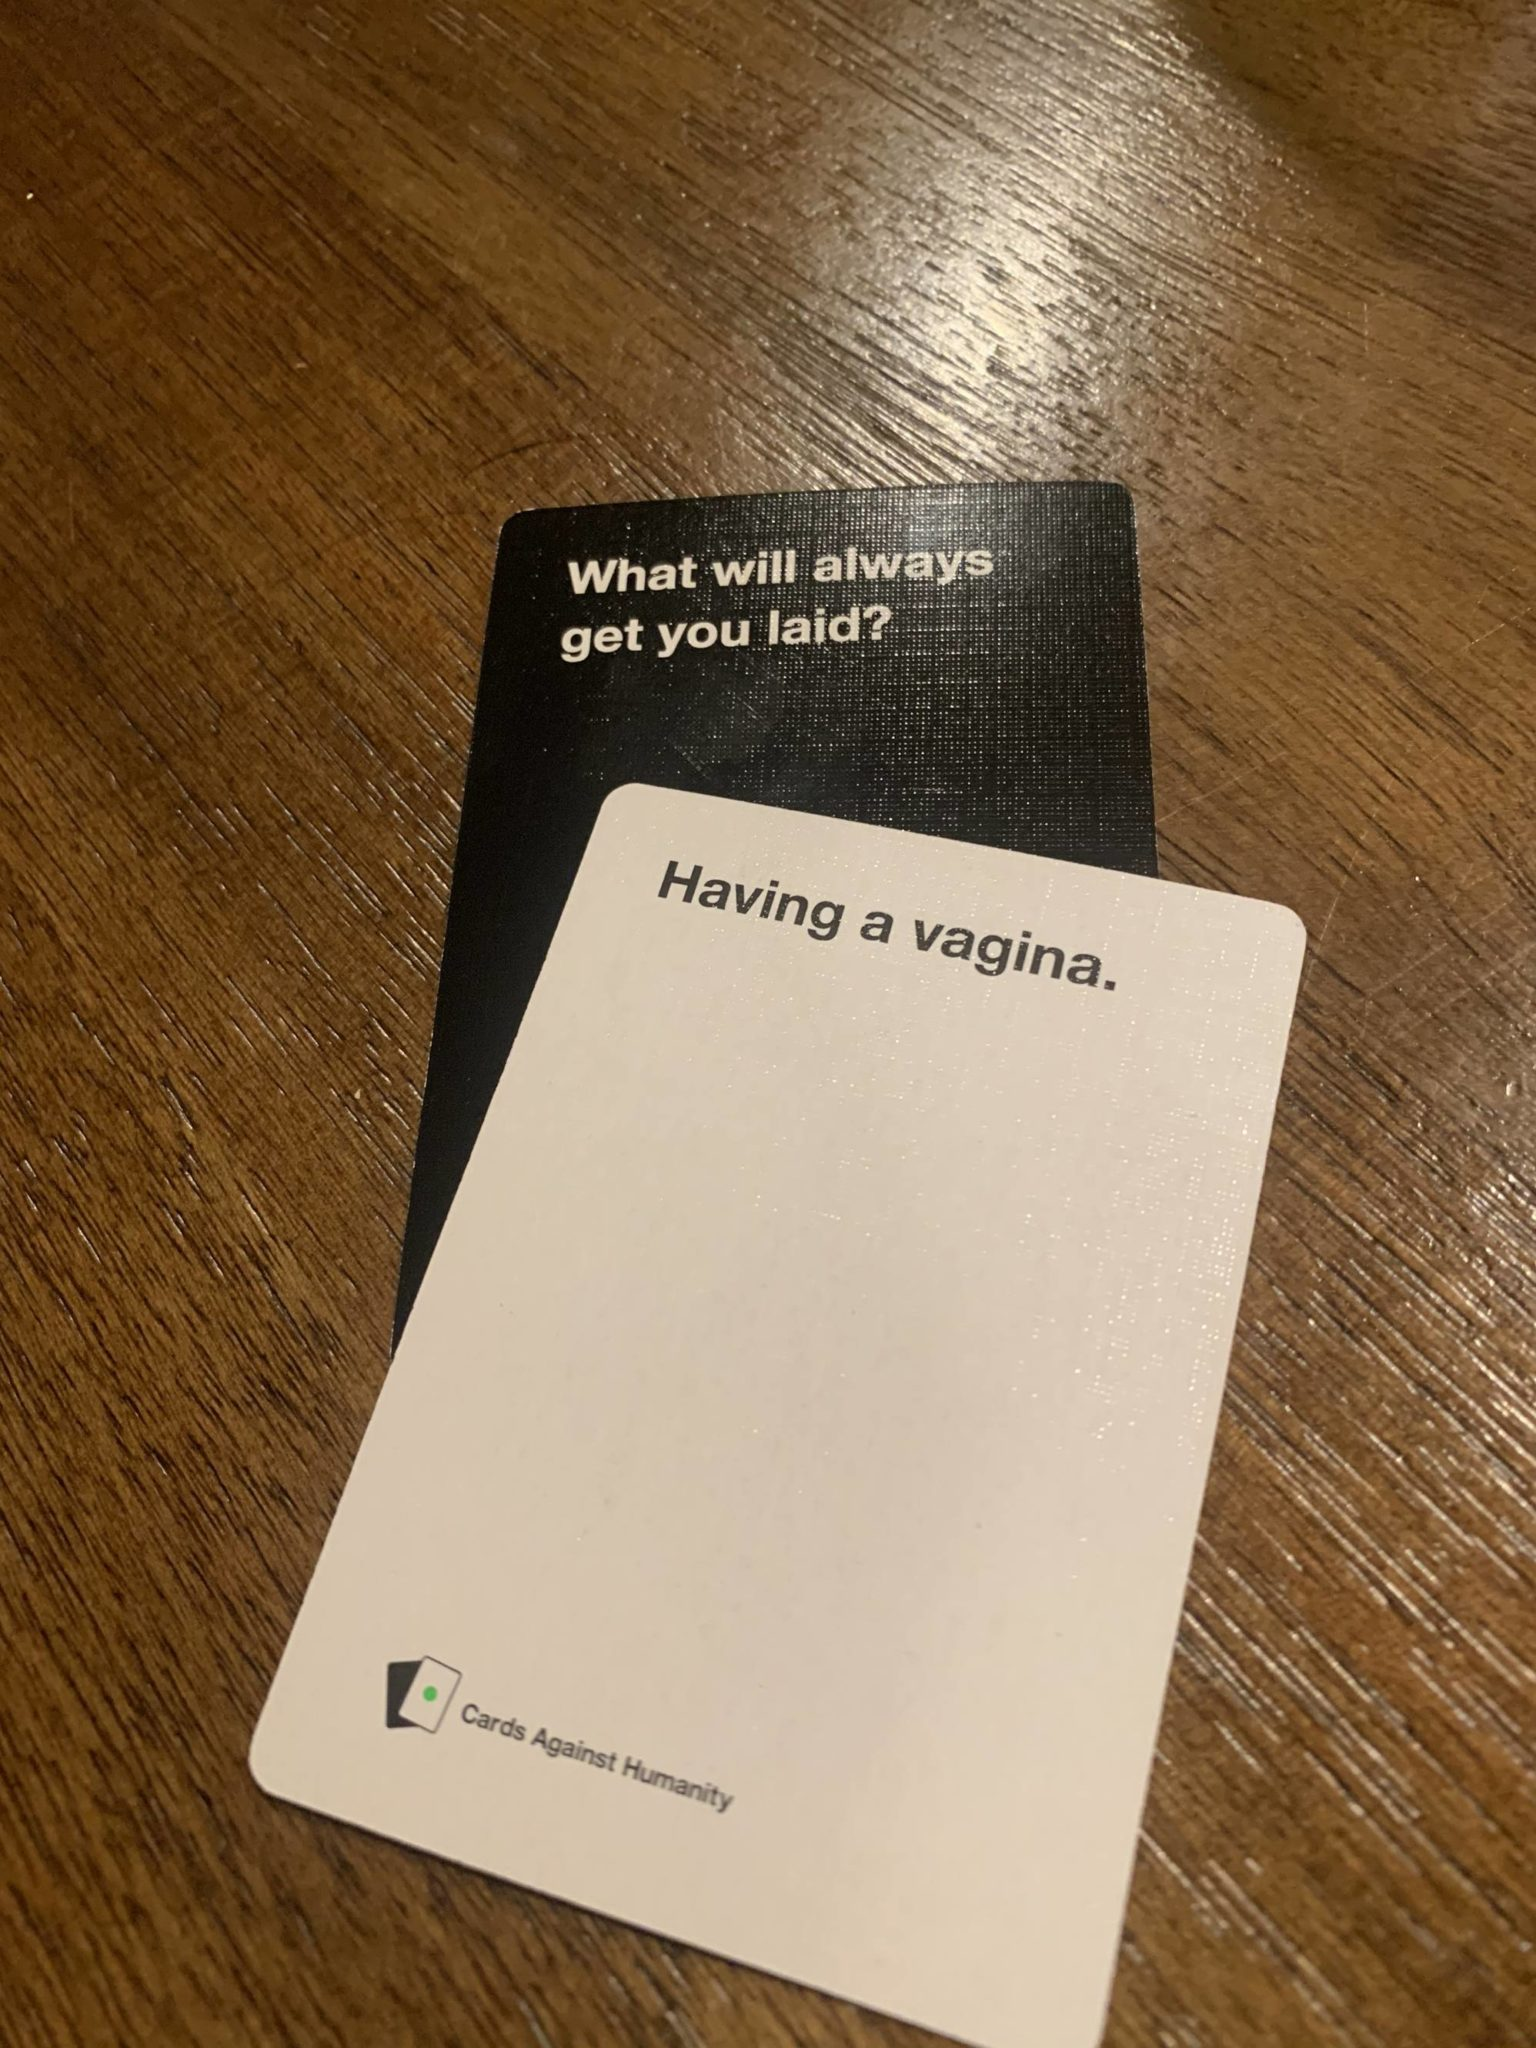 35 Of The Funniest Cards Against Humanity Combos